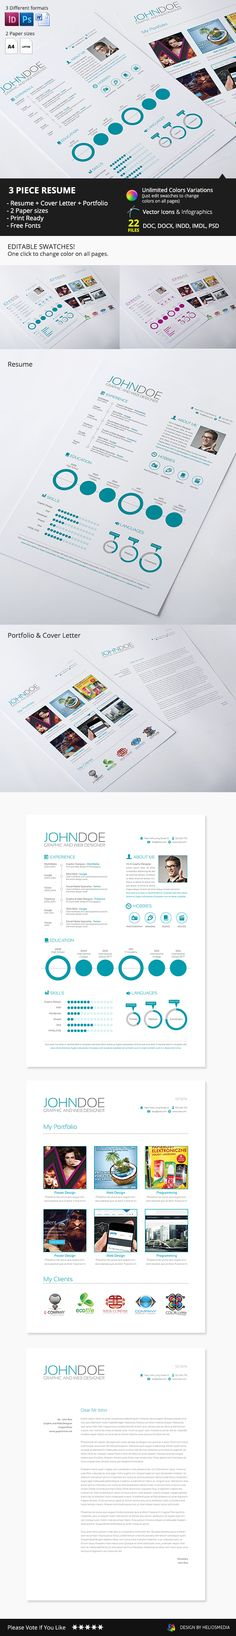 Modern Resume by Rafał Kozera, via Behance ㅡ 디자이너의 이력서 :) Design Typo, Cv Design, Graphic Design, Modern Design, Cover Letter For Resume, Cover Letters, Portfolio Resume, Portfolio Design, Visual Identity